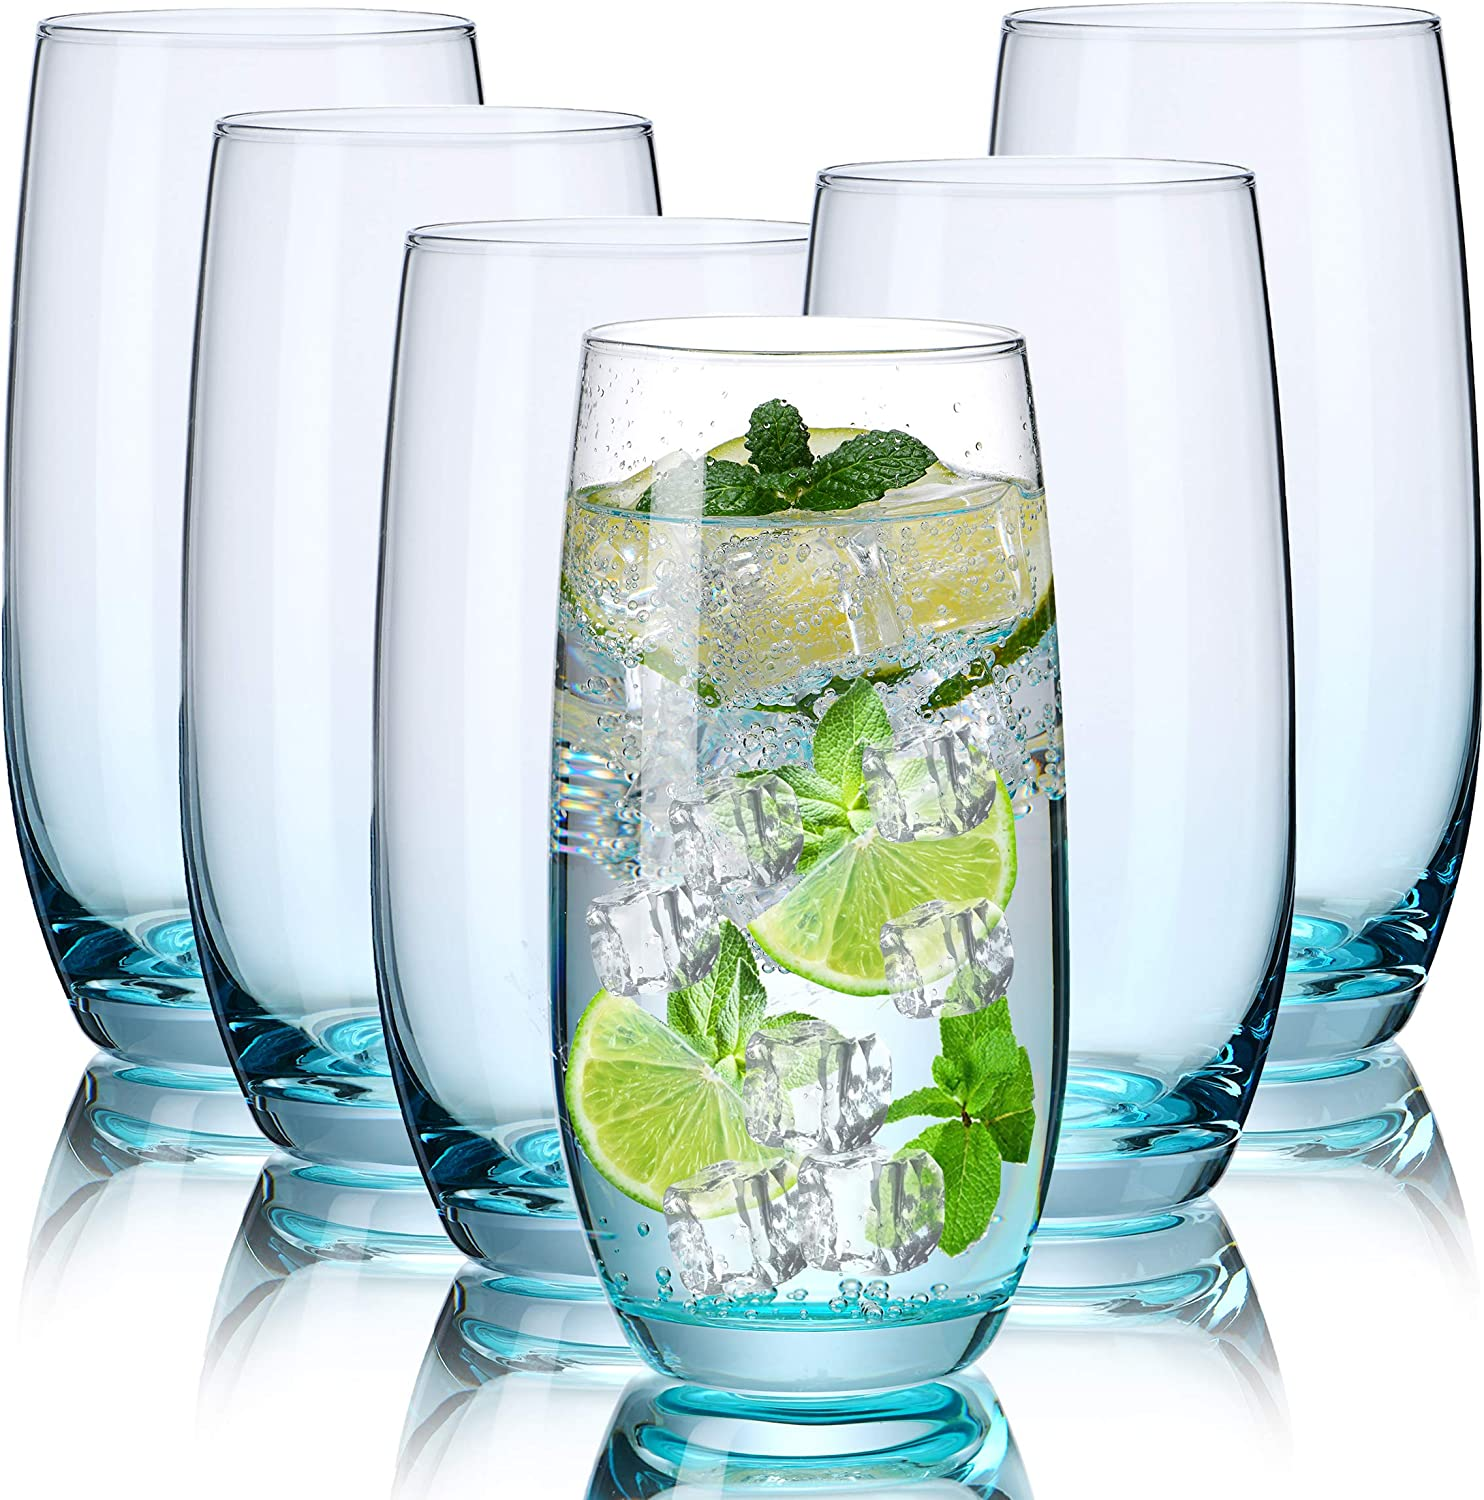 CUKBLESS Highball Glasses Set of 6 - Crystal Tall Drinking Glasses - Cocktail Glass Cups for Mojito, Juice, Beverage, and water - 19 Oz (Blue)